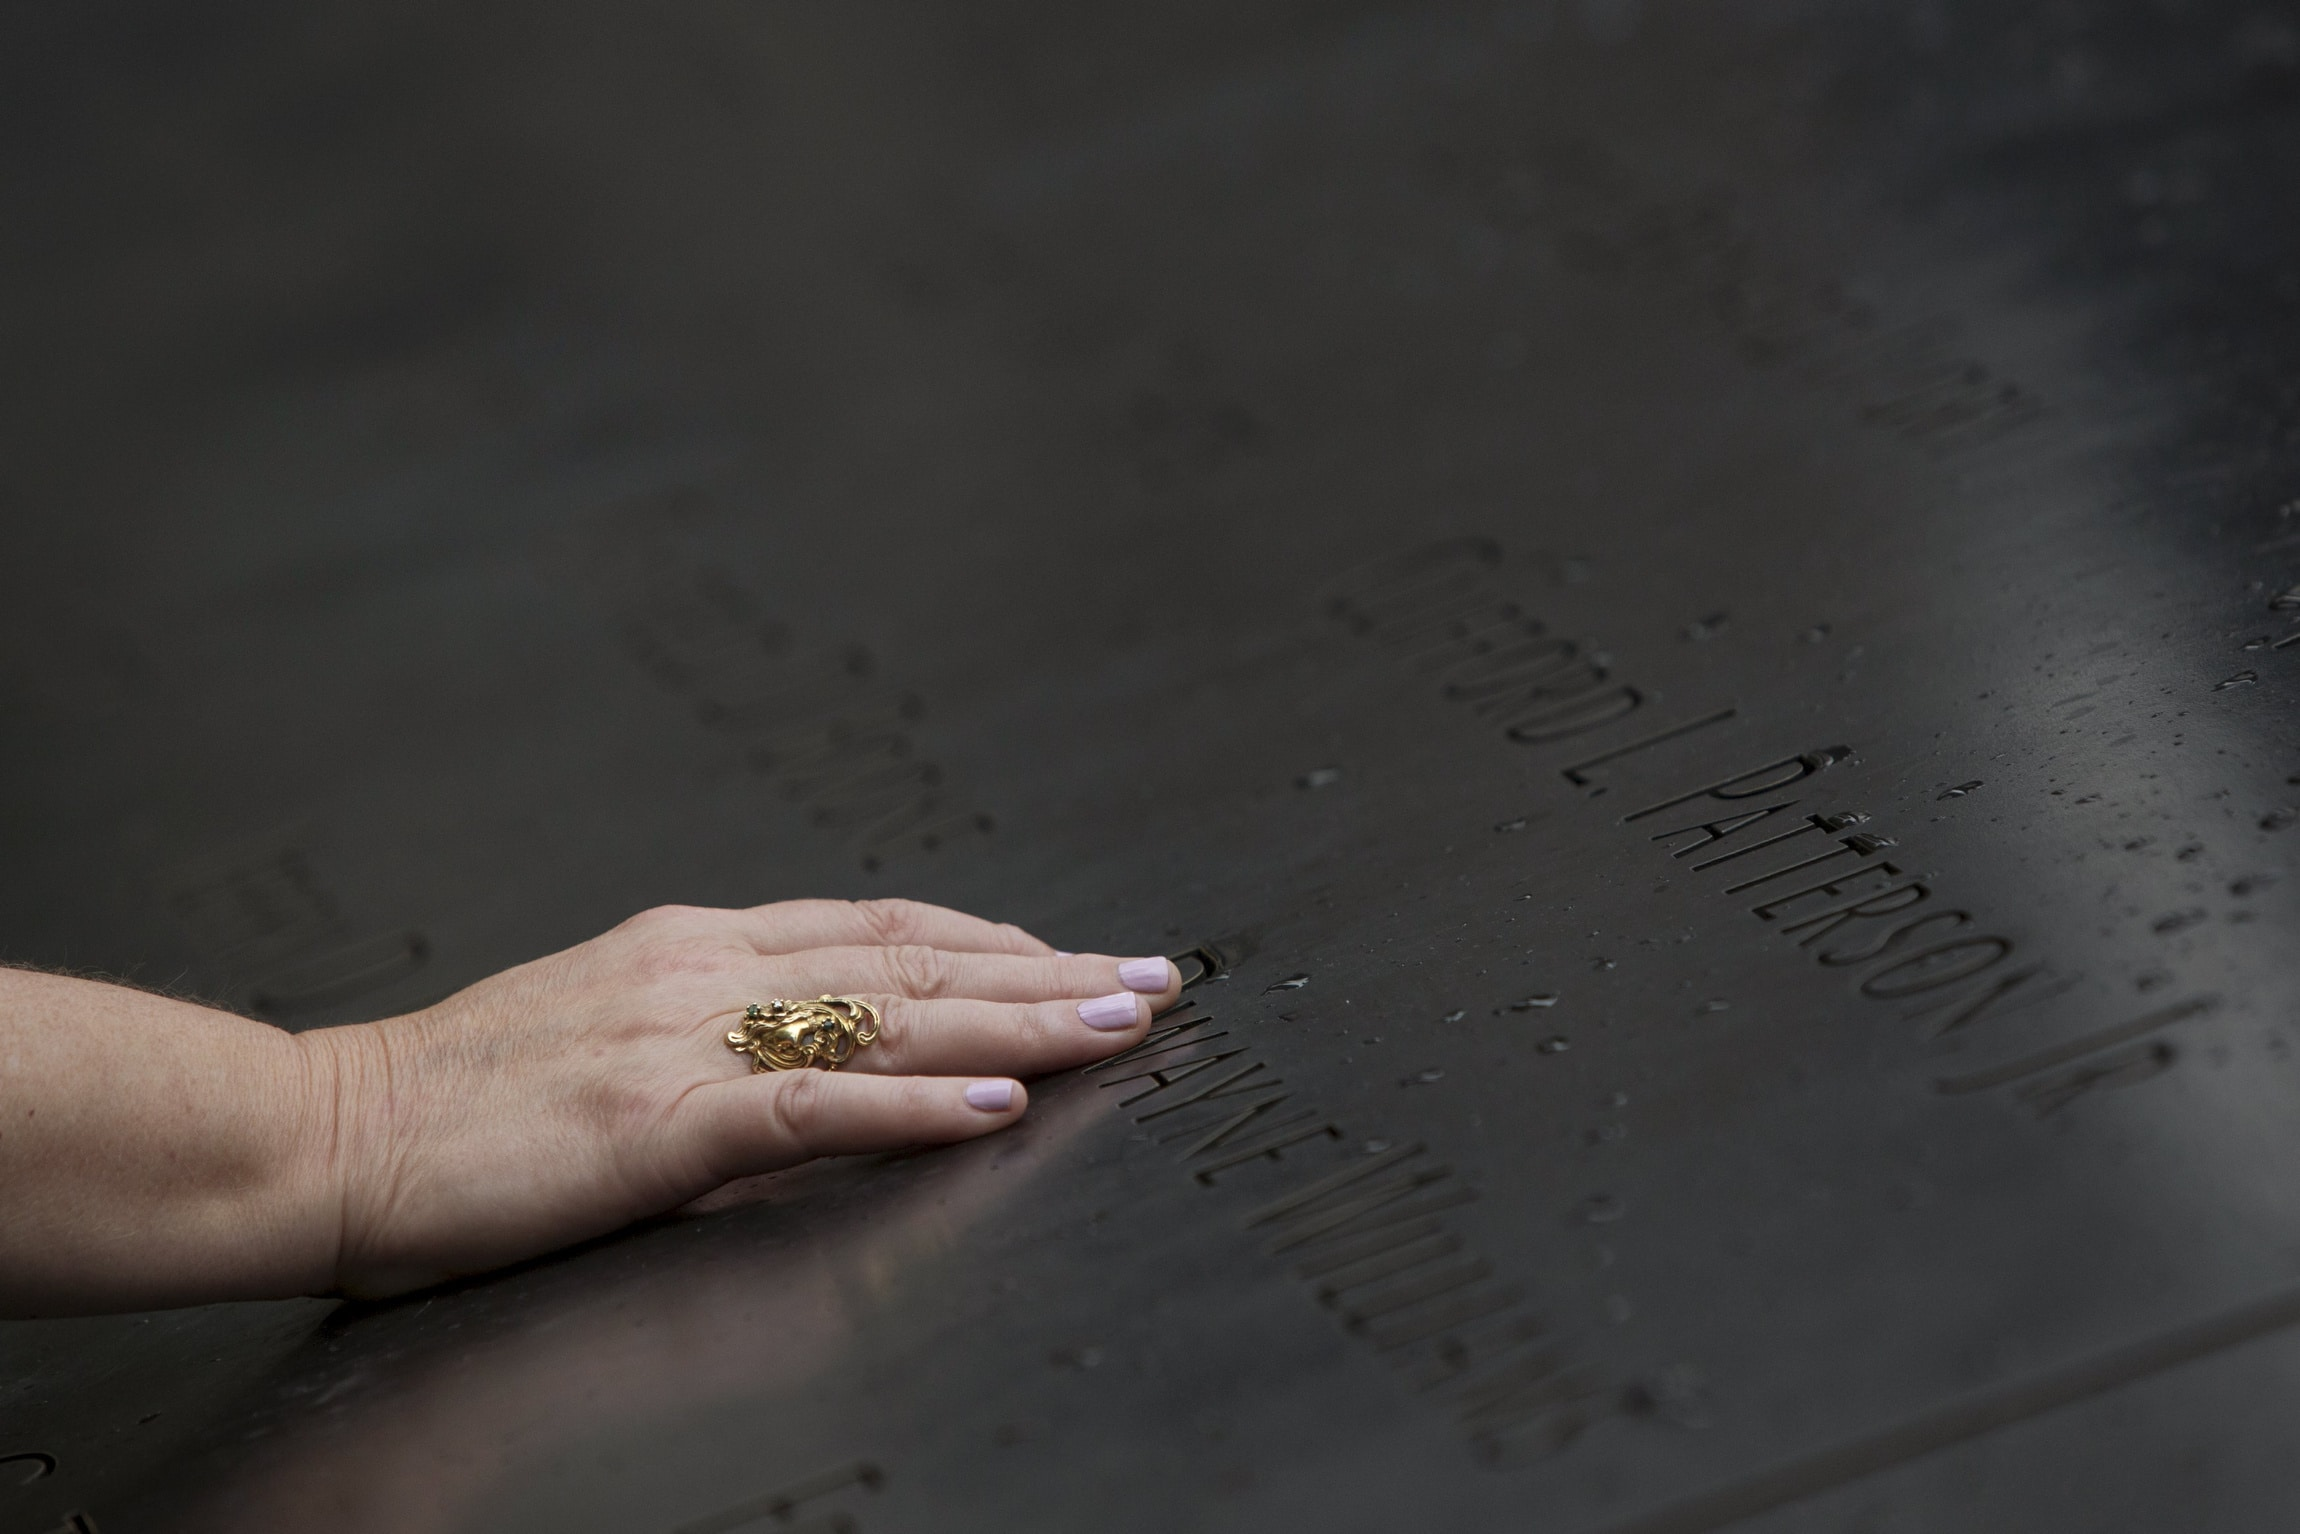 A woman touches the names at the National September 11 Memorial and Museum in New York City. The 2001 terrorist attacks claimed the lives of nearly 3000 people in New York City, Shanksville, Pennsylvania, and at the Pentagon. Photo: CNS/Andrew Kelly, Reuters